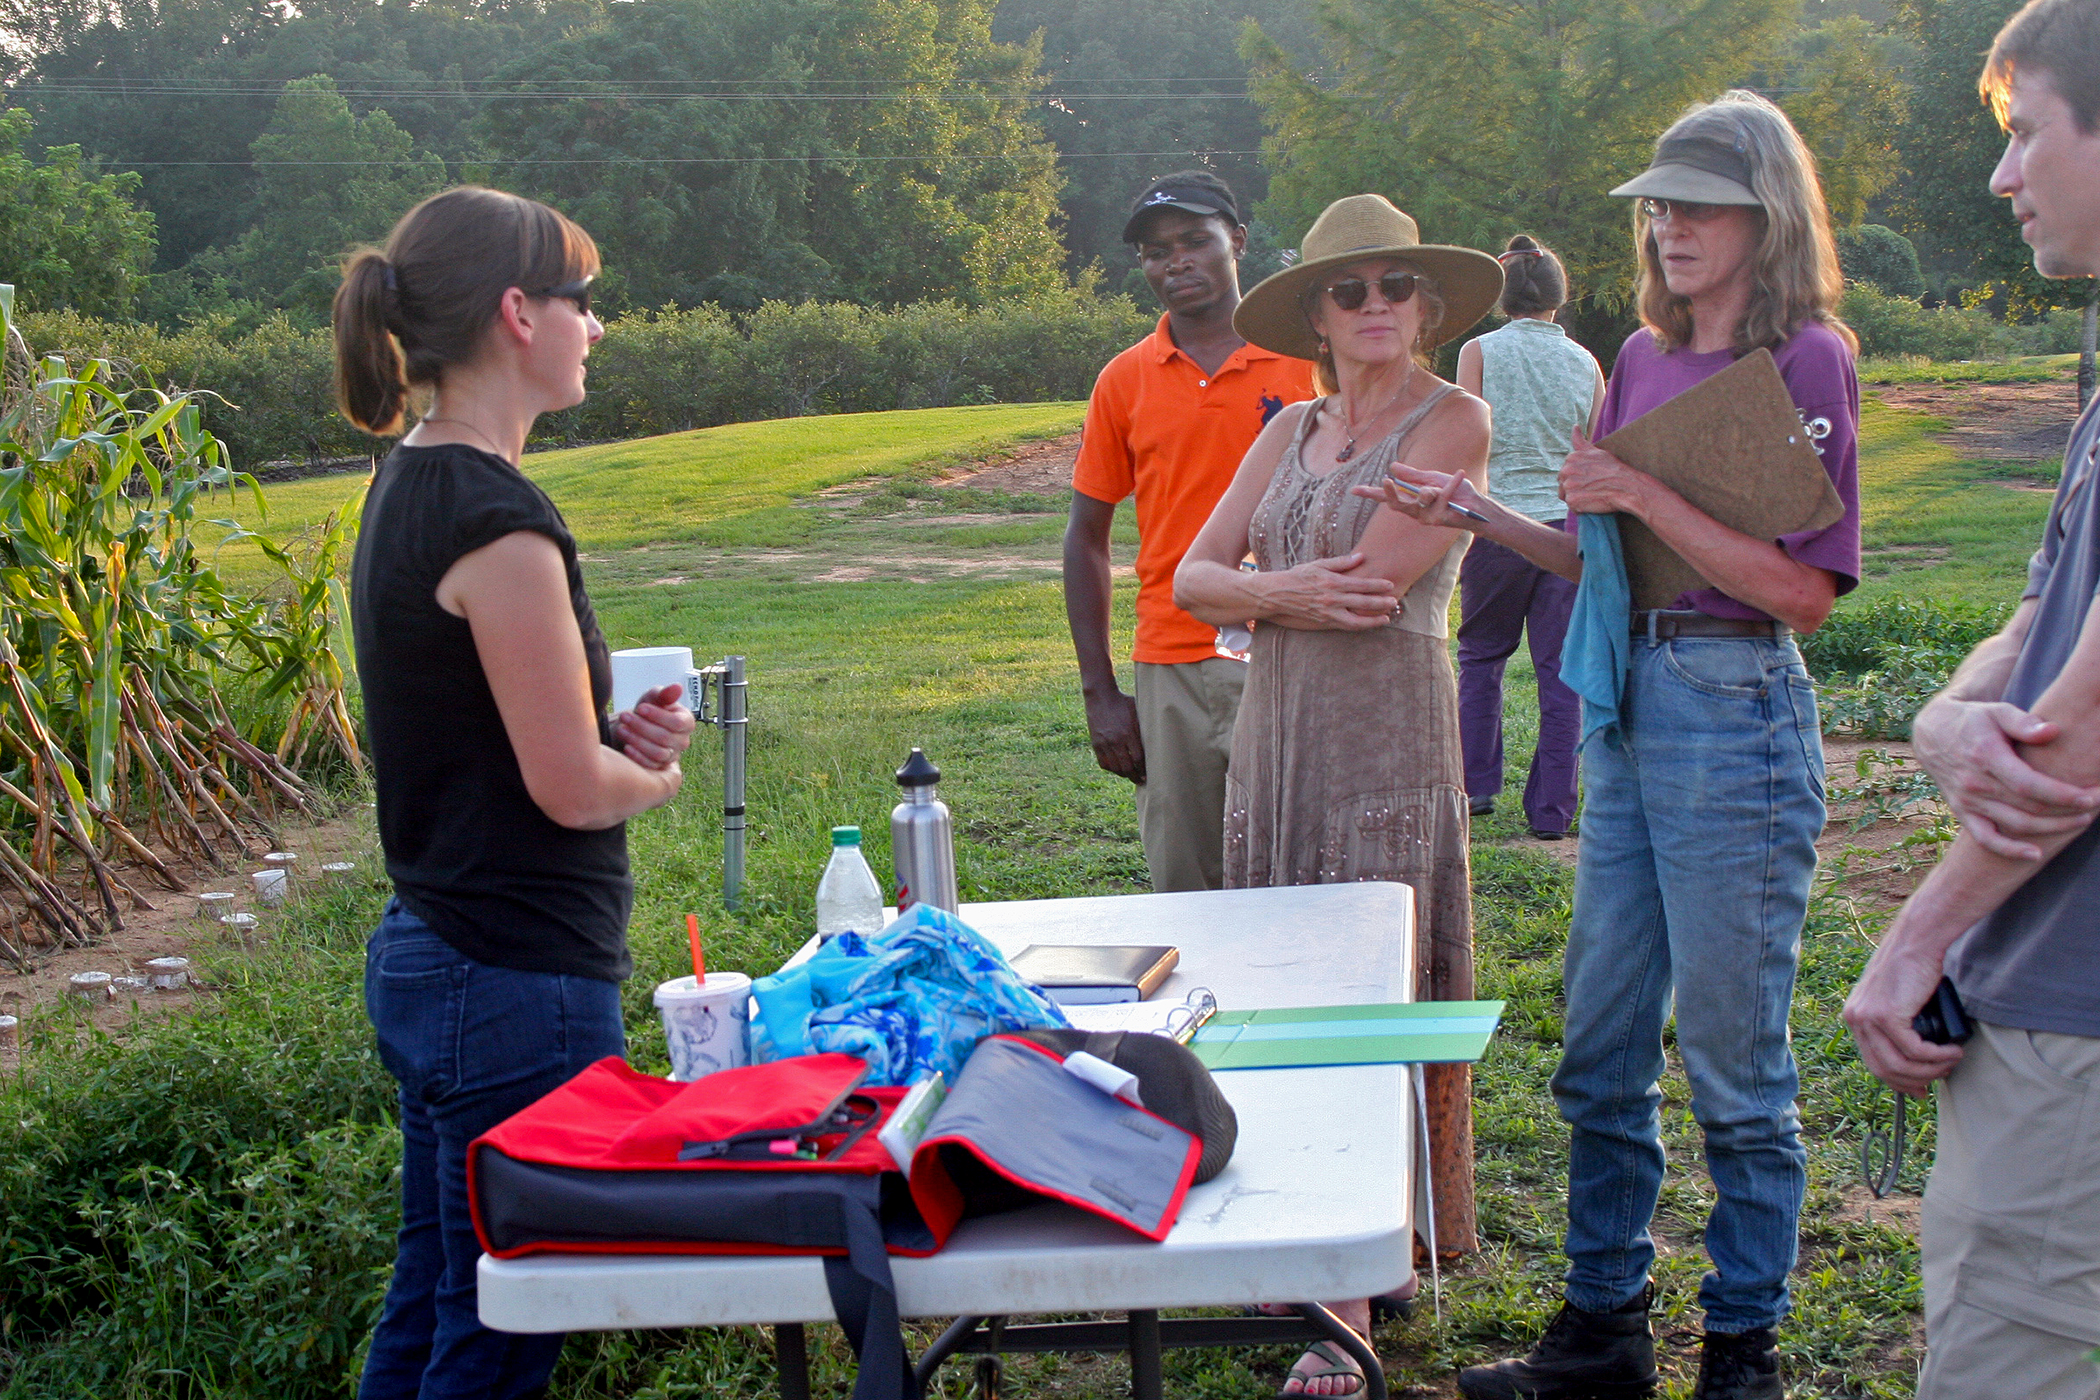 Attendees discuss growing practices at the University of Georgia's organic research farm in Watkinsville during the 2012 Organic Twilight Tour.